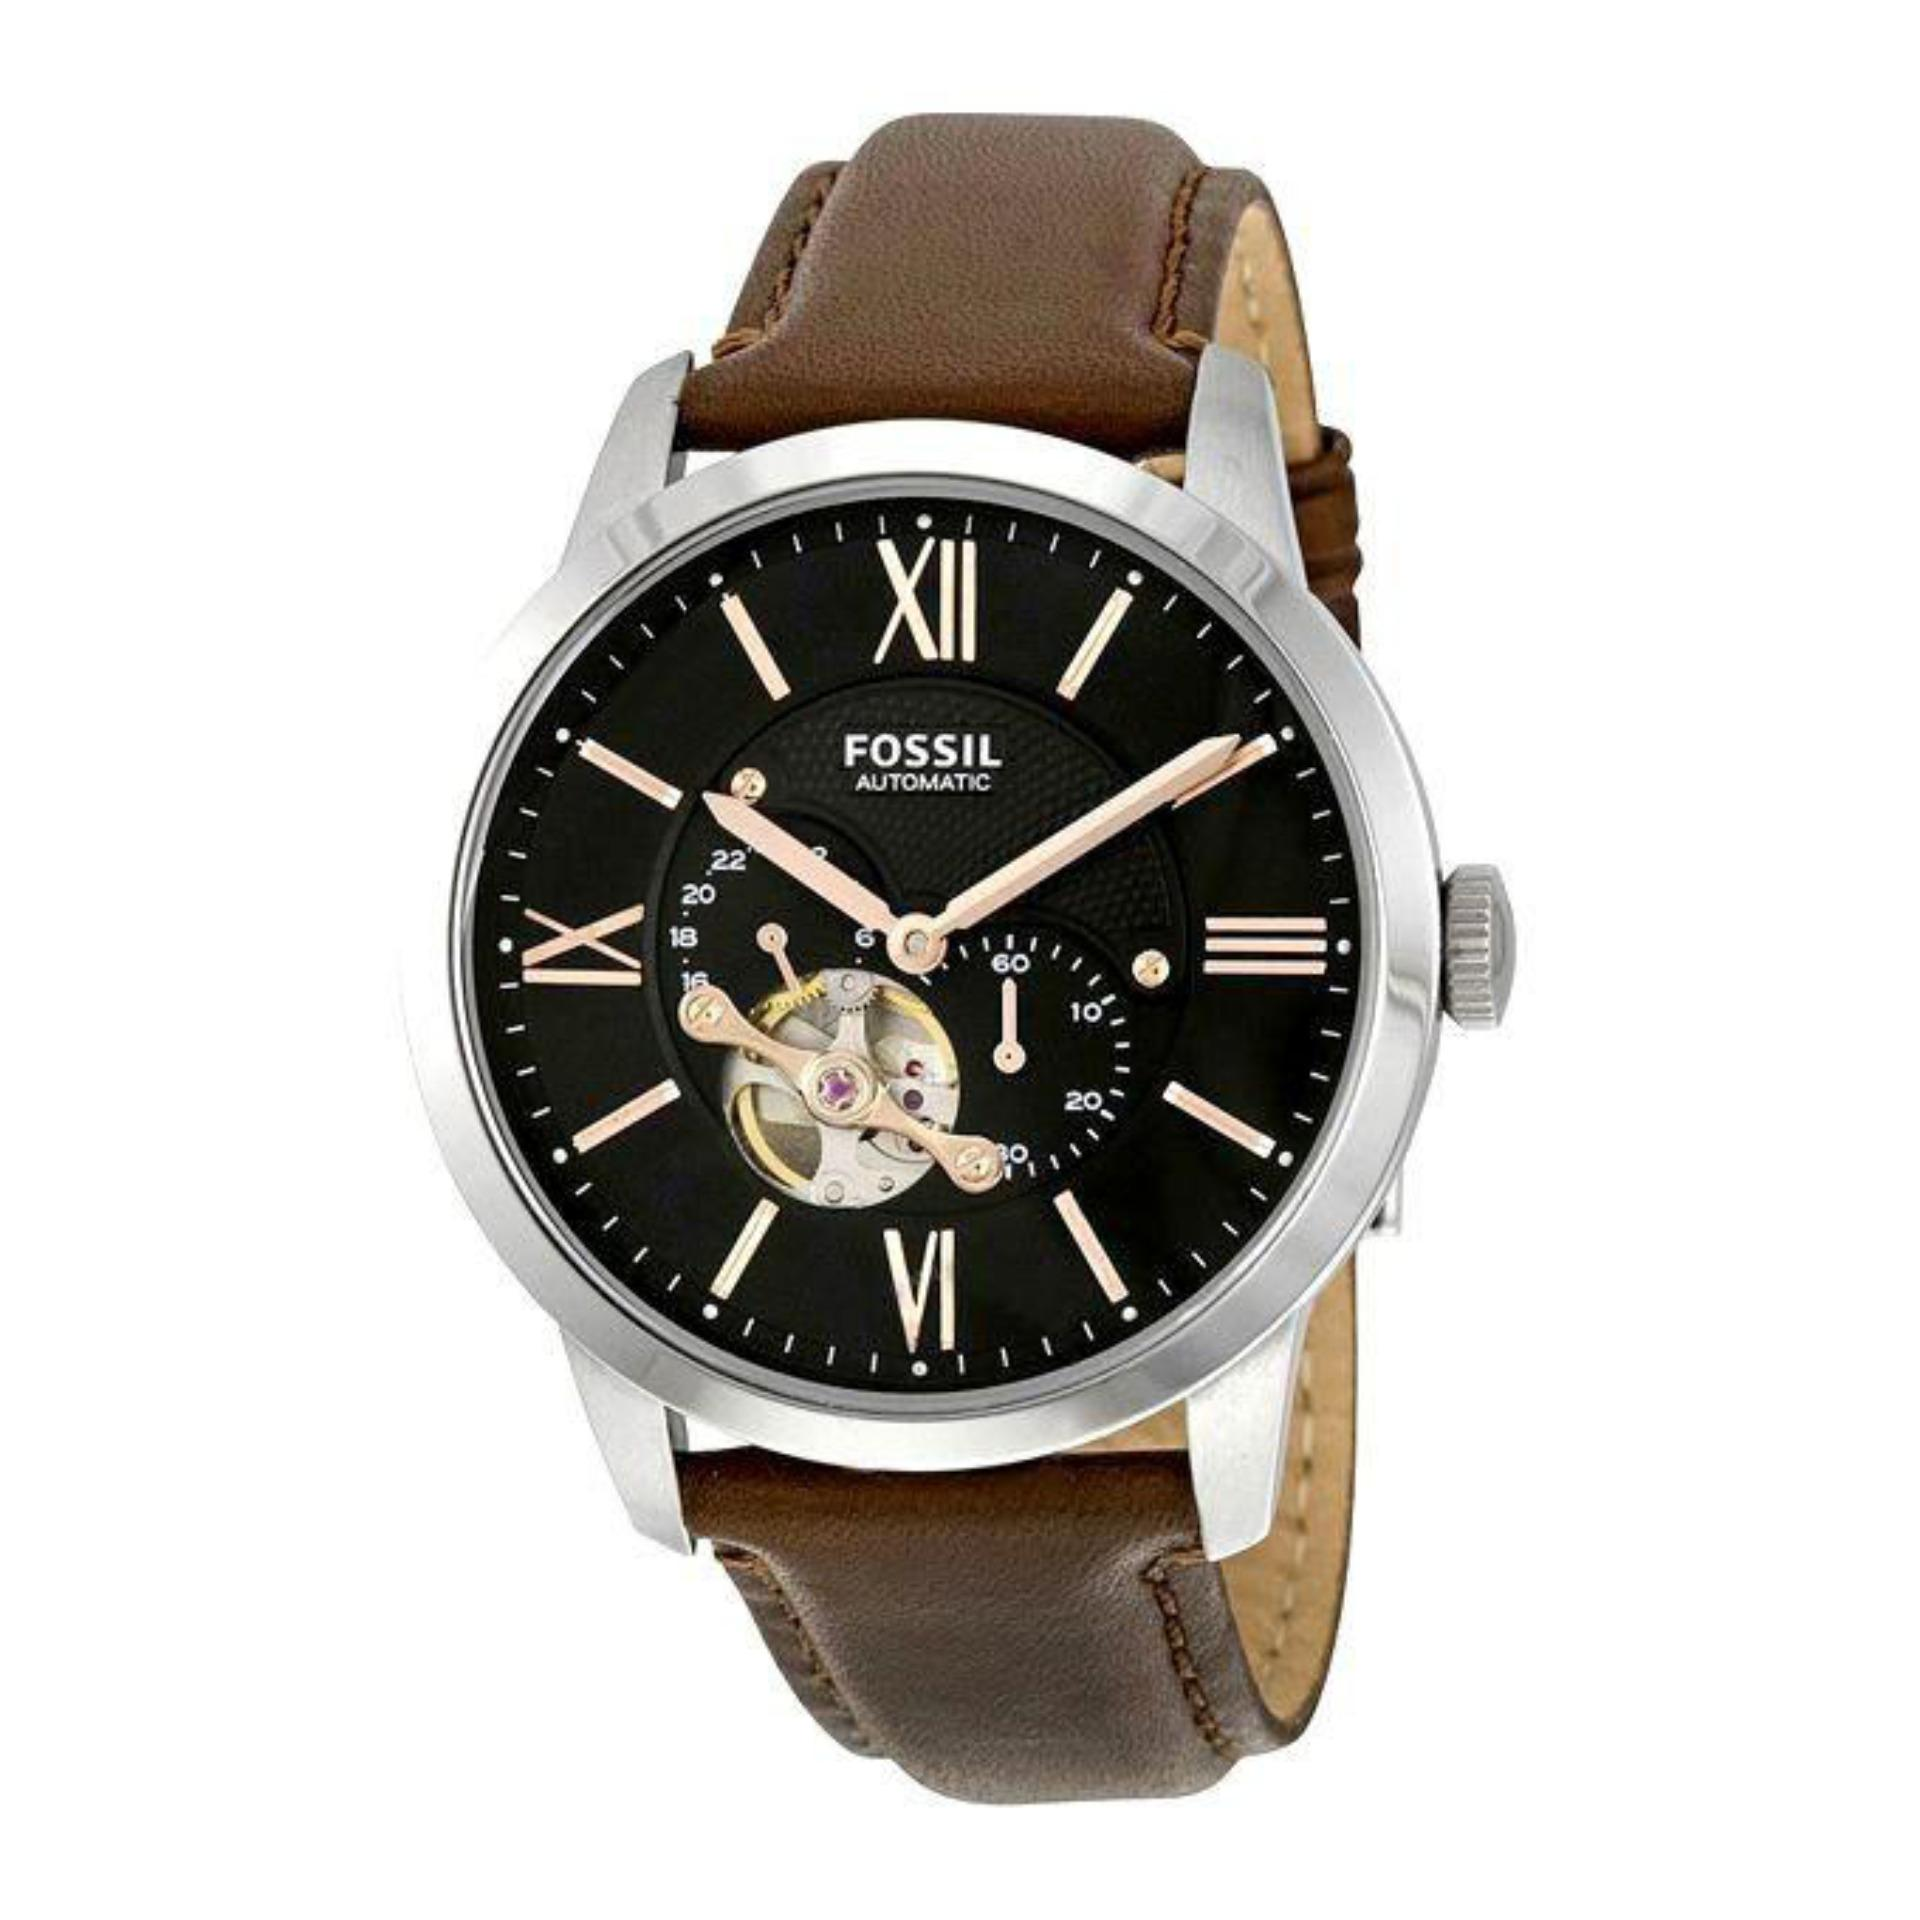 Fossil Online Store In Bangladesh Es4113 Original Me3061 Leather Chronograph Watch For Men Brown